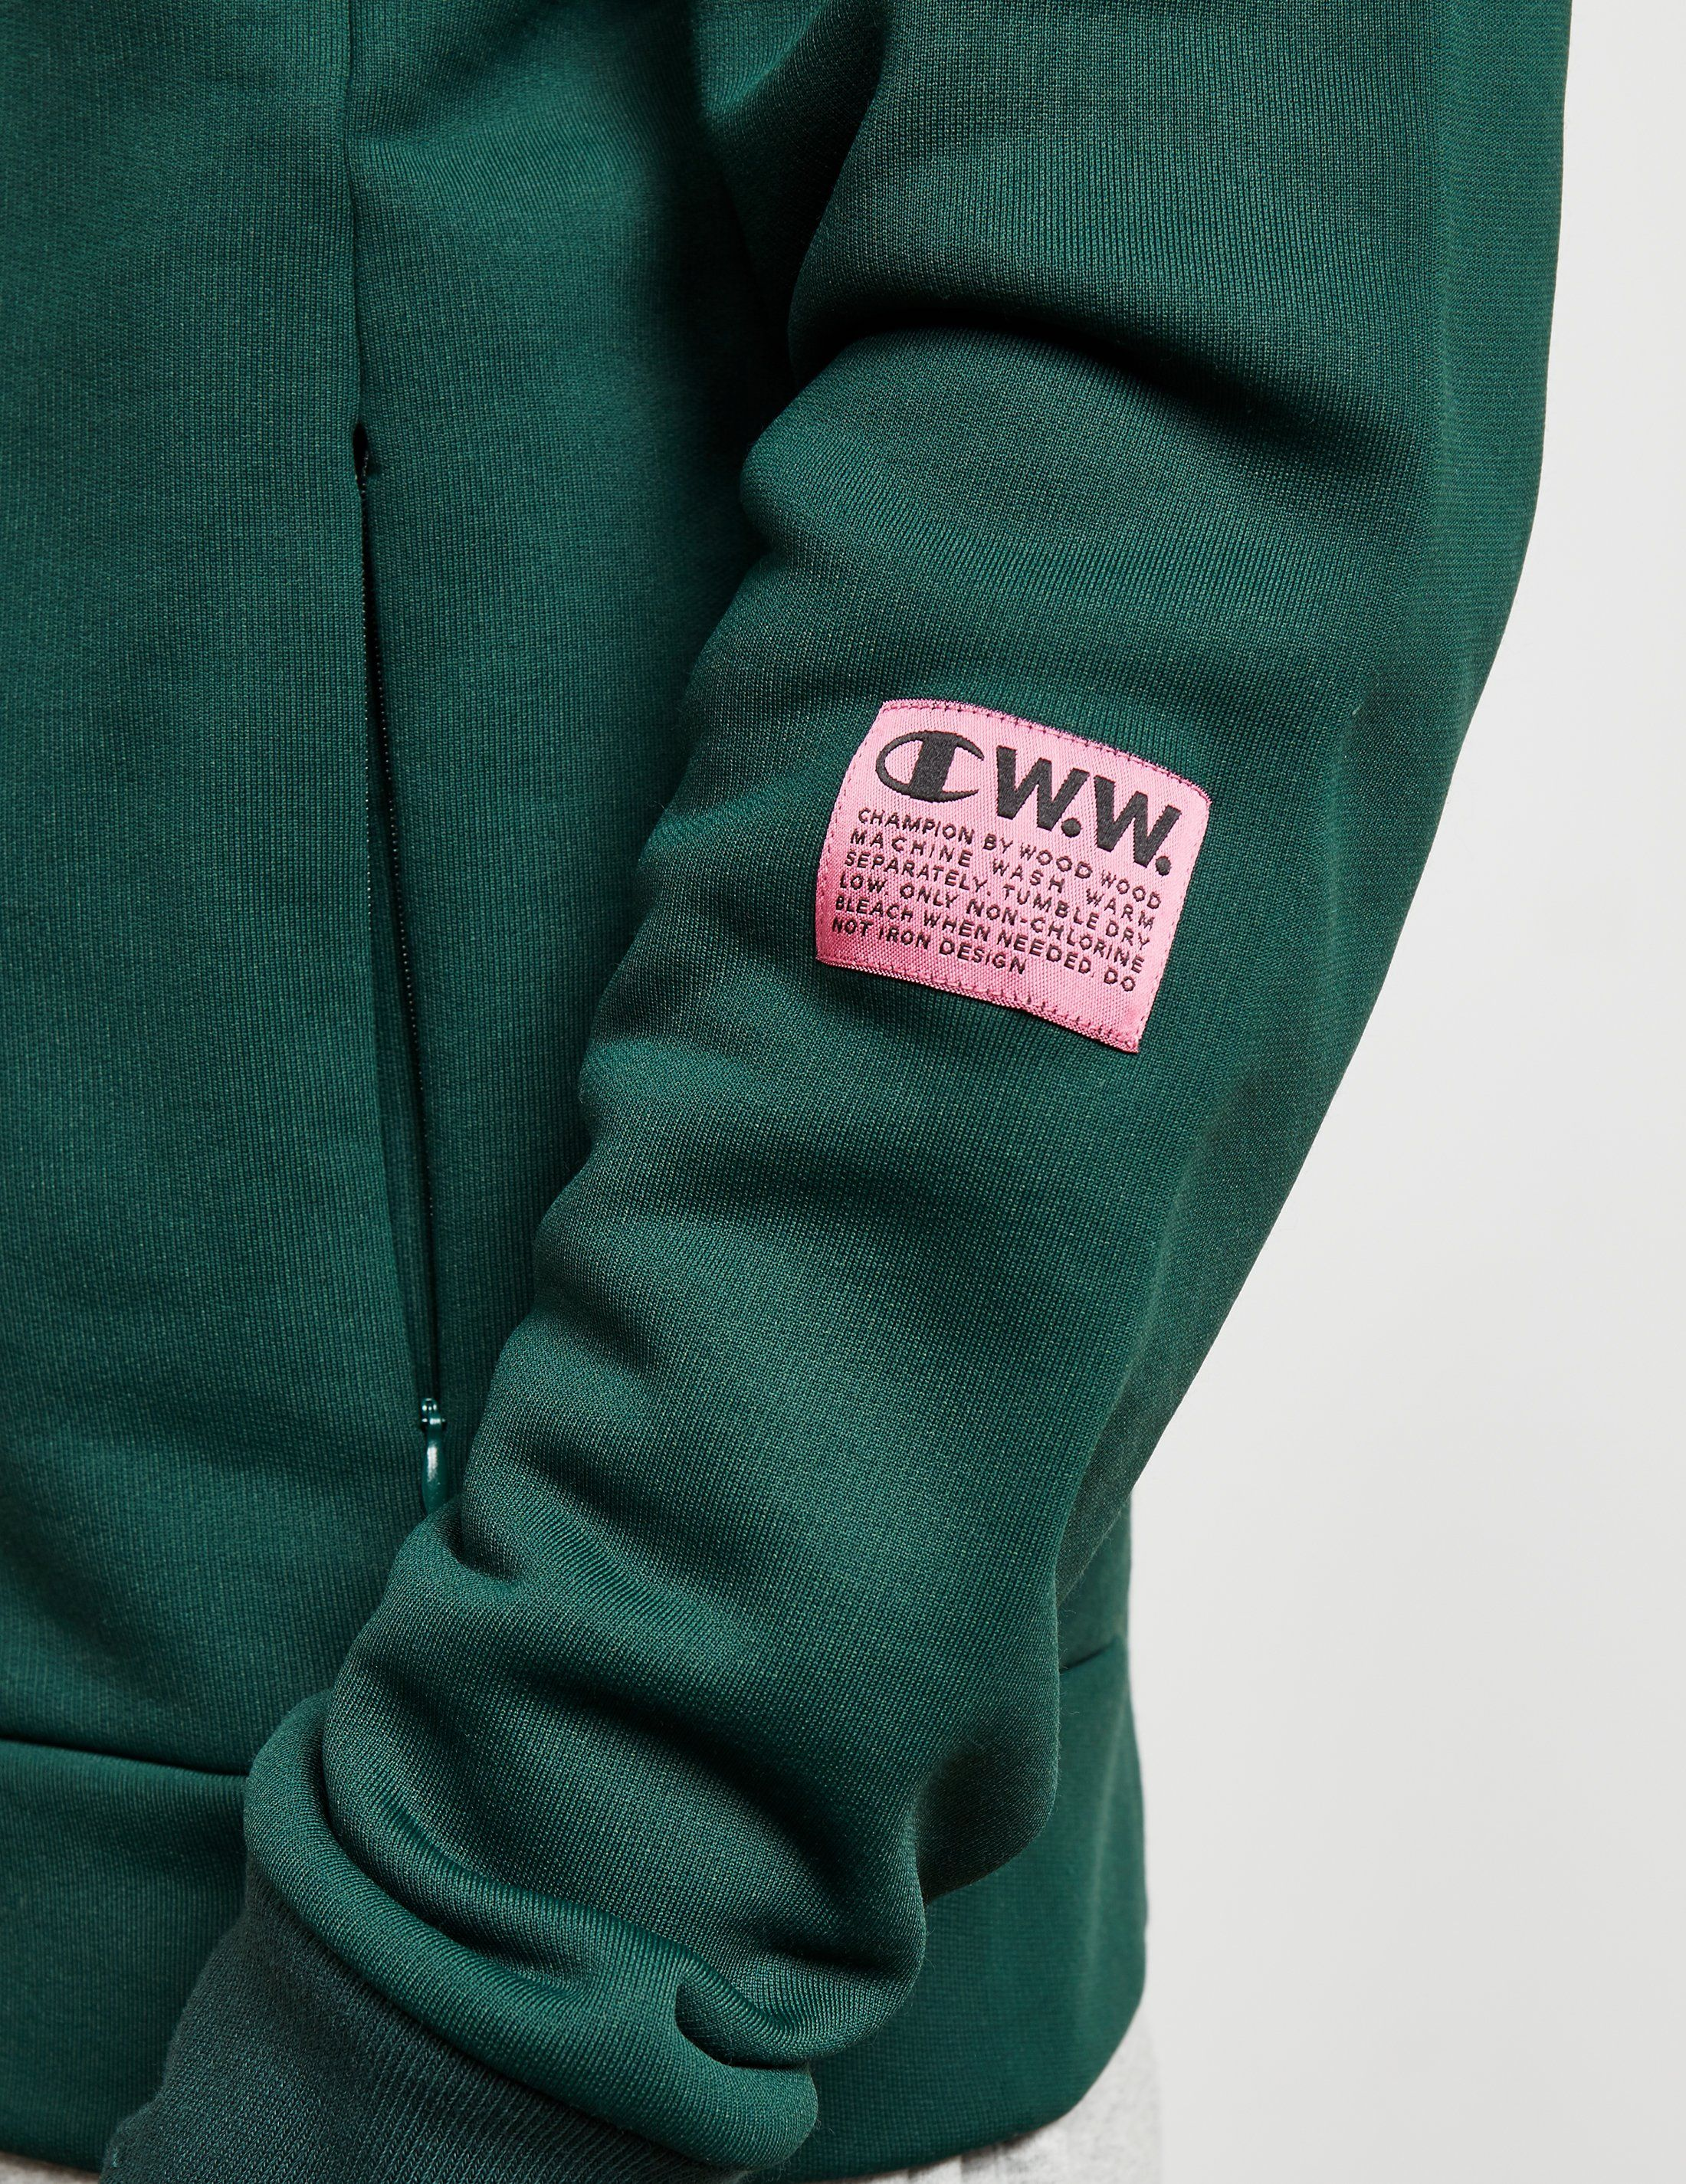 Champion x Wood Wood Pocket Full Zip Sweatshirt